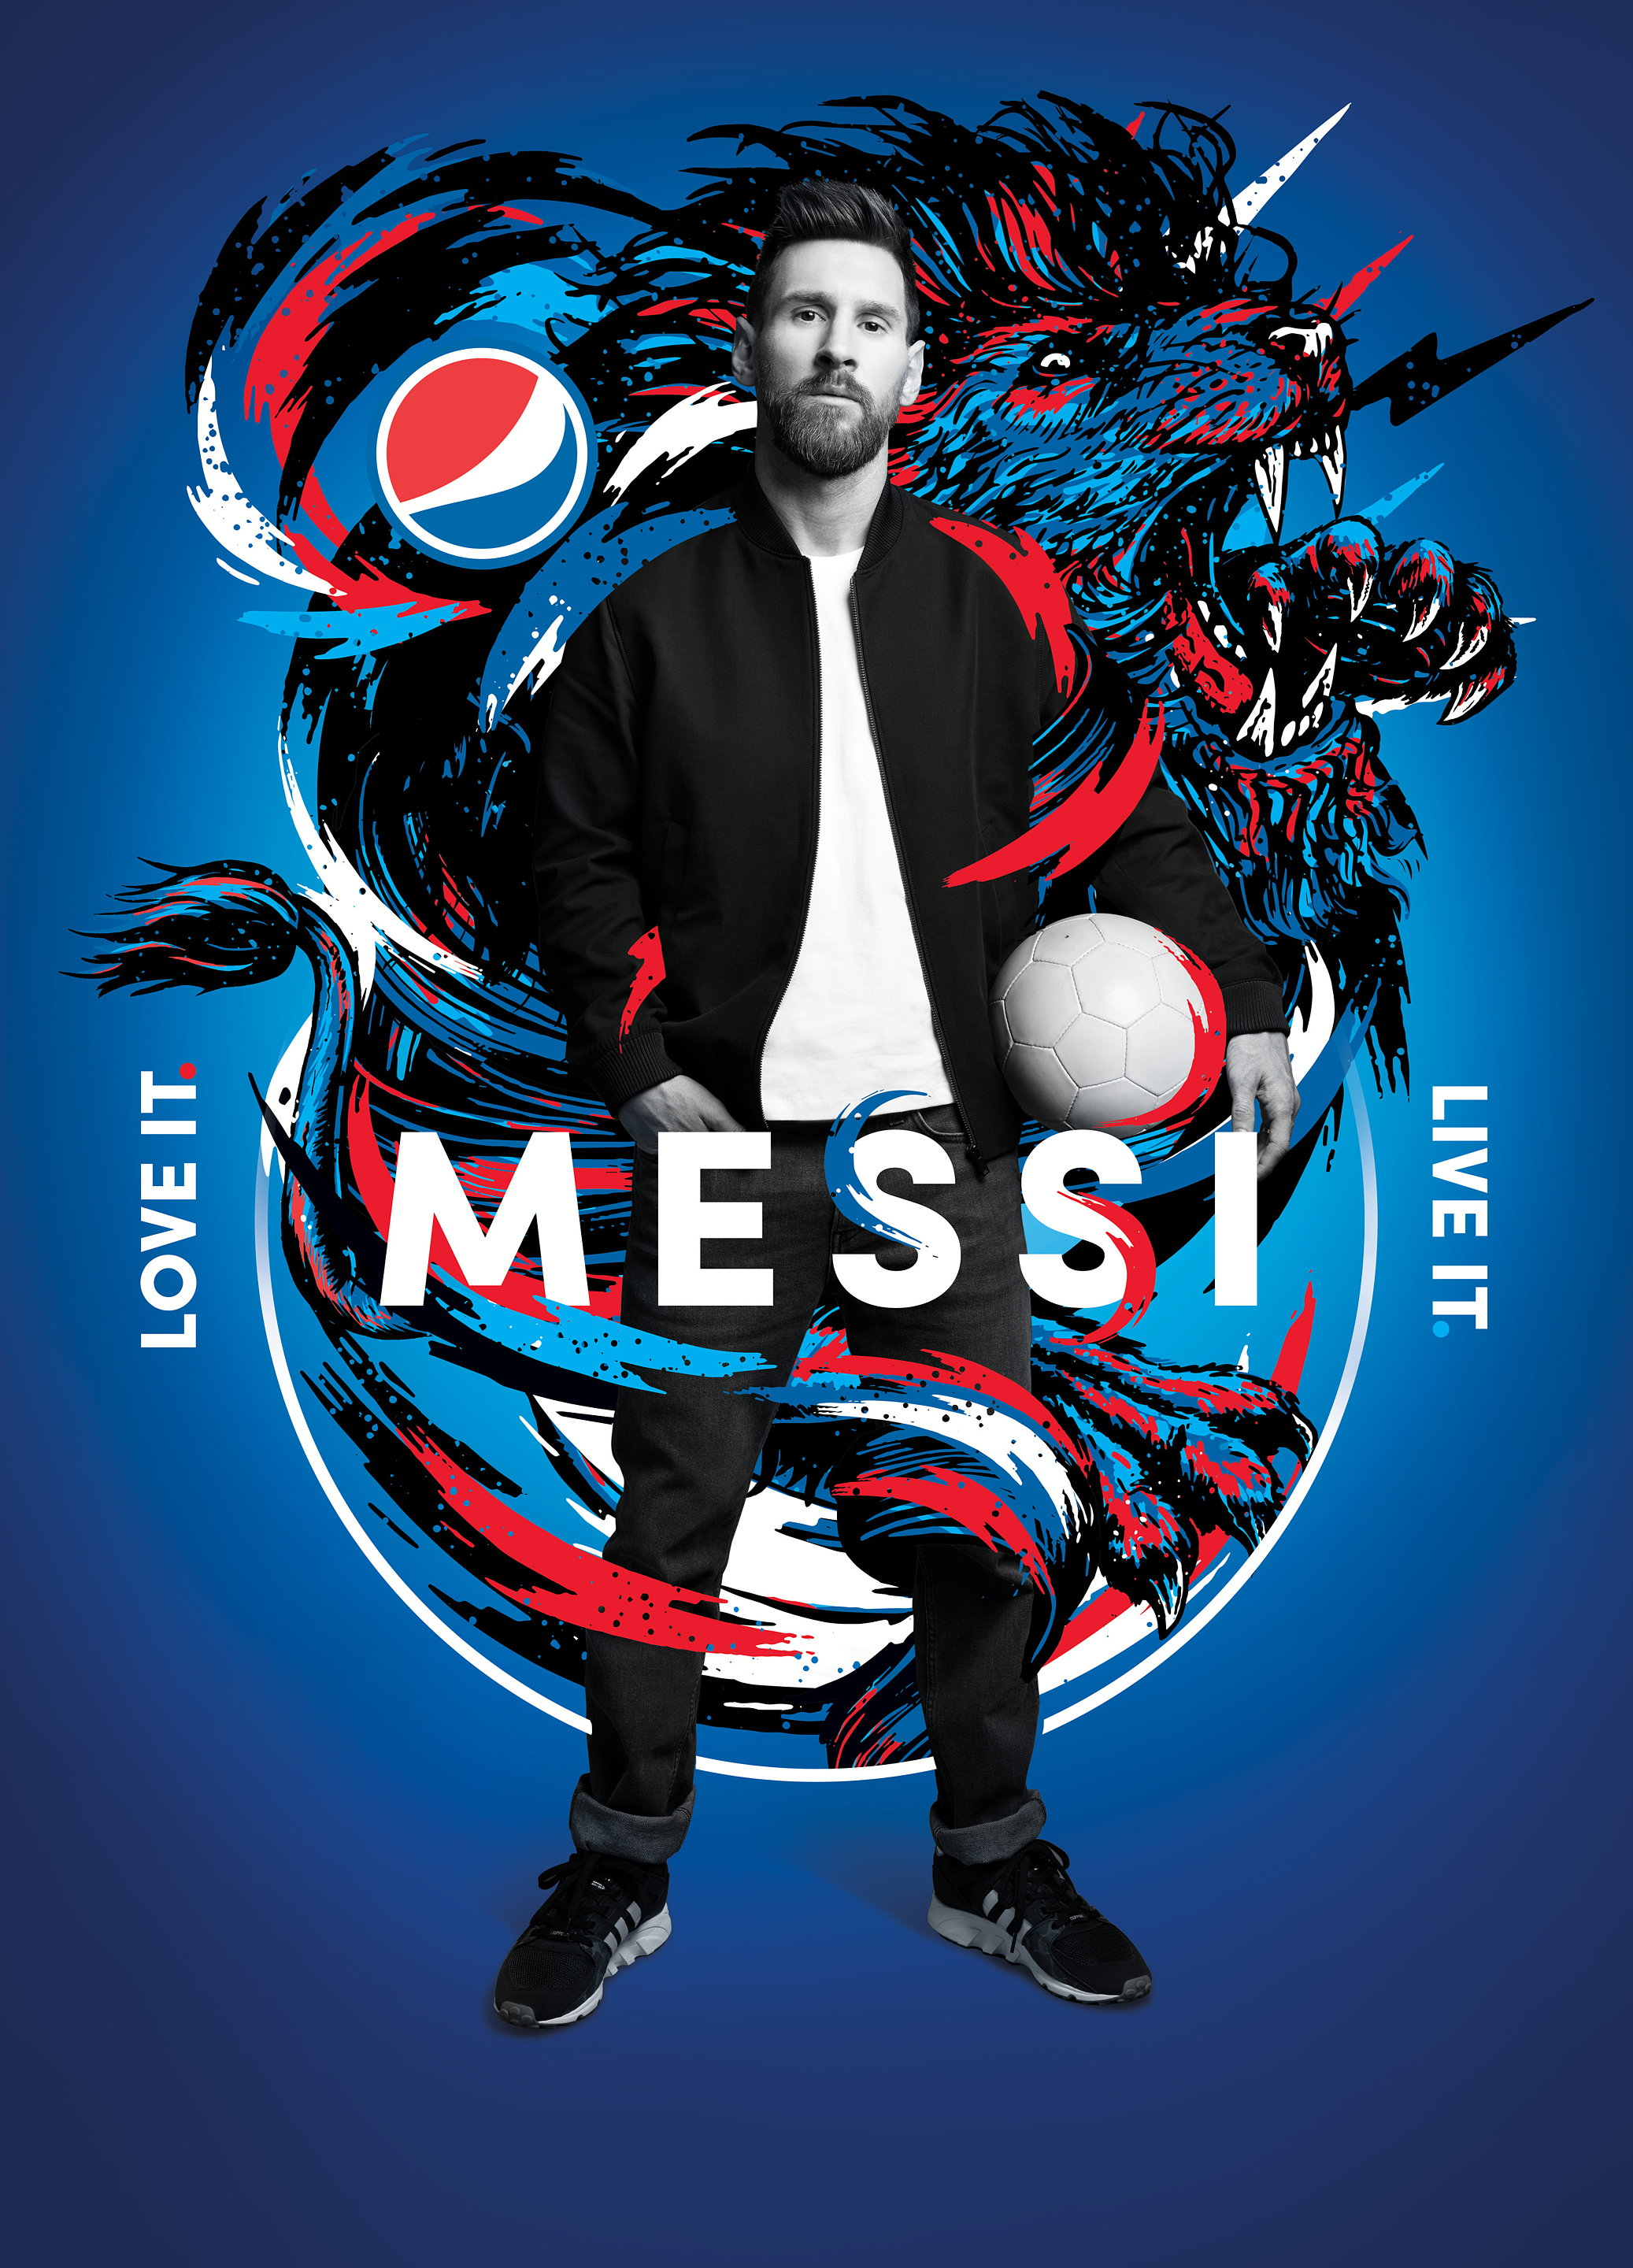 Messi x Danny Clinch x DIYE